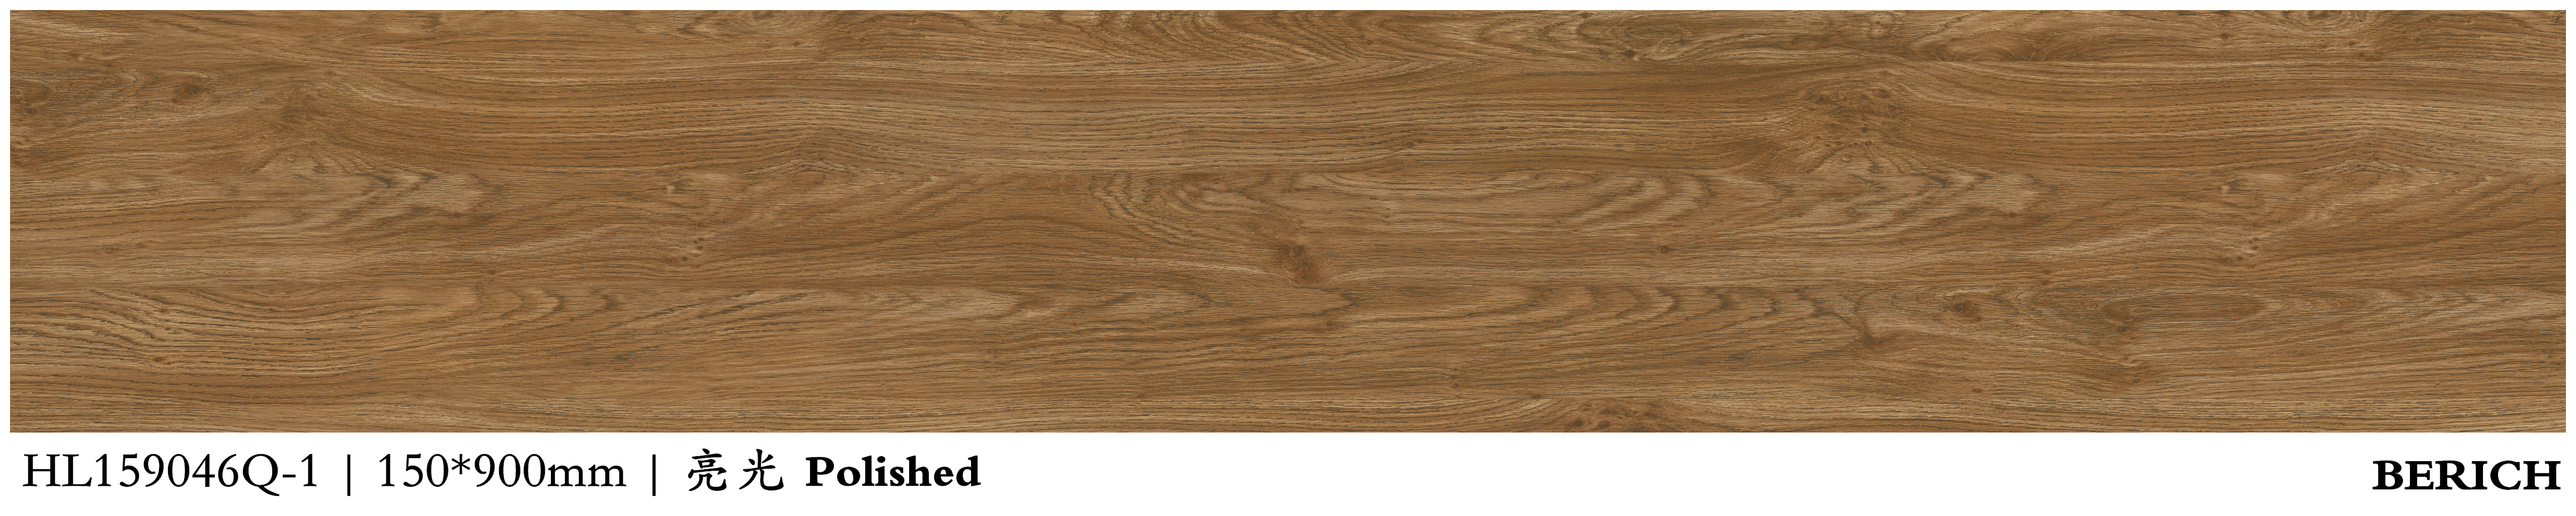 Berich full polished wood look porcelain tiles